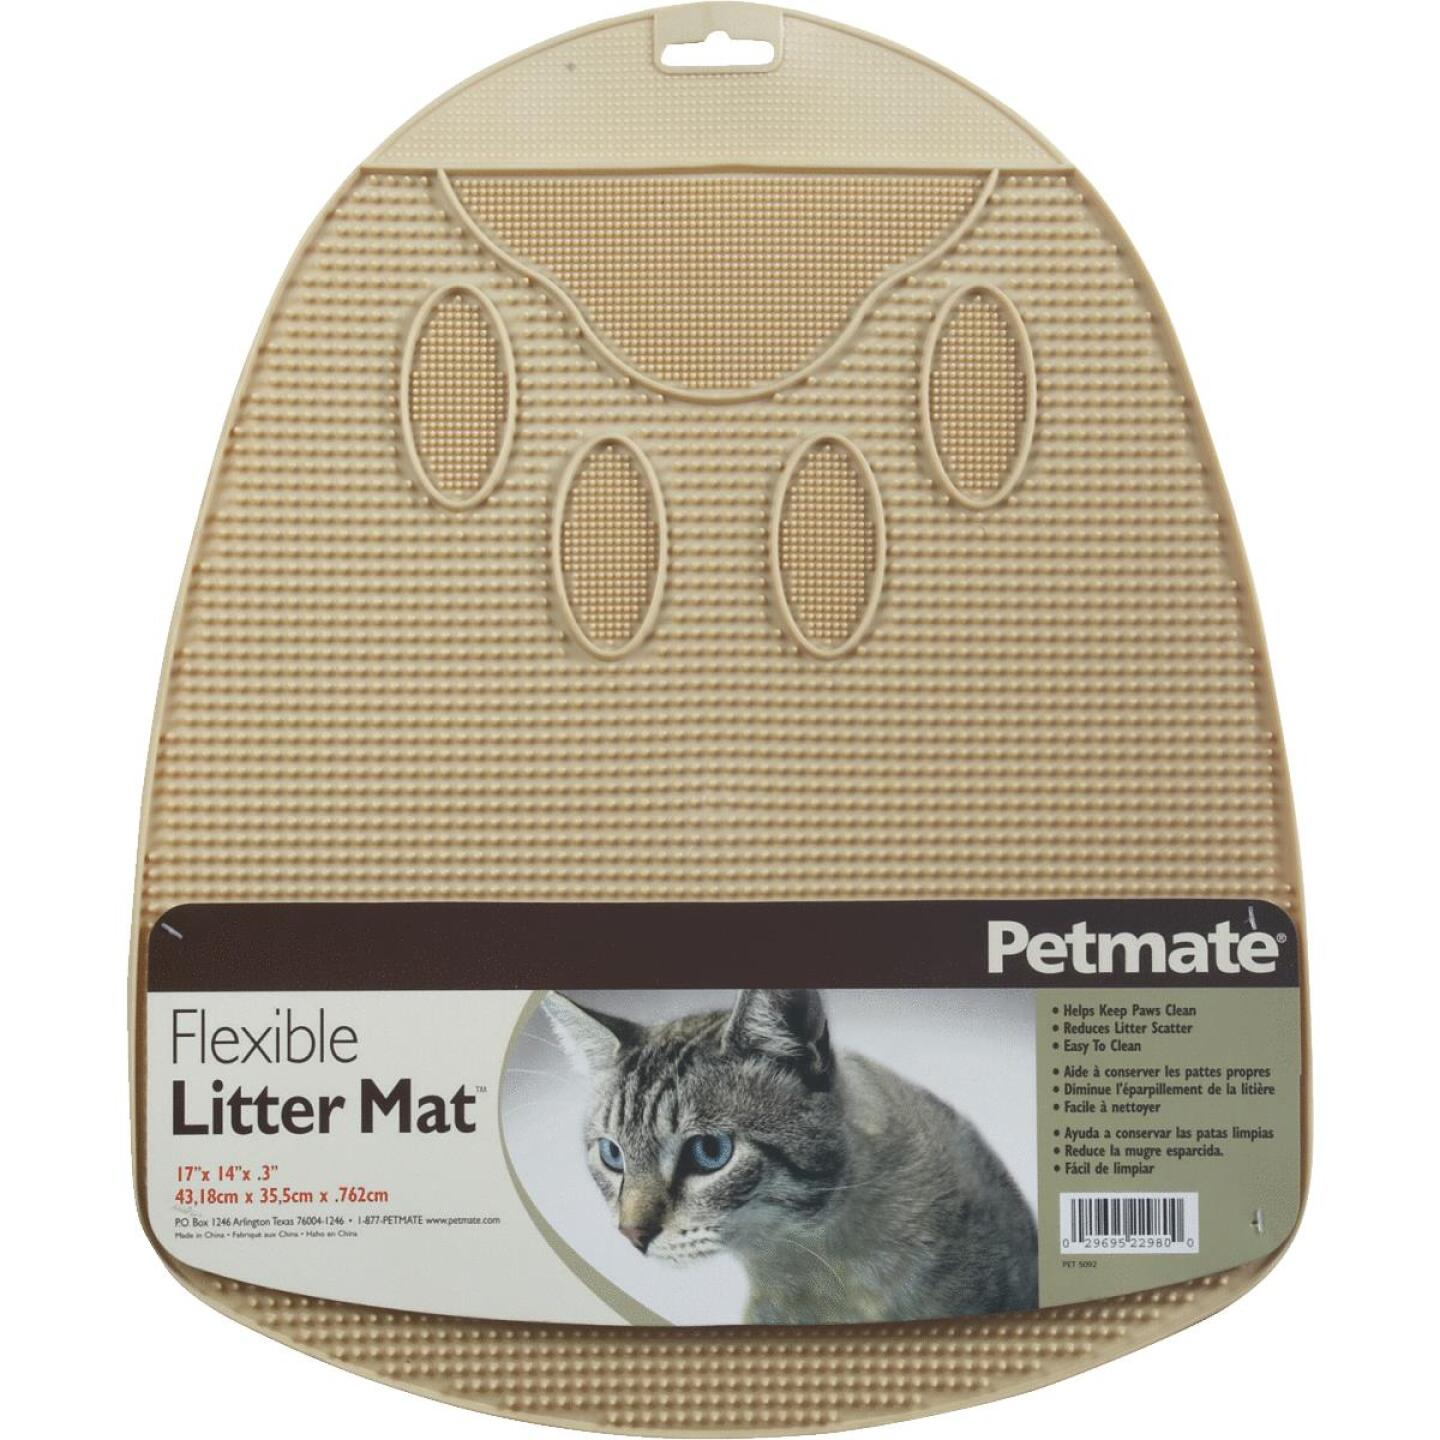 Petmate 13-1/2 In. x 14 In. x 1 In. Flexible Rubber Litter Mat Image 2